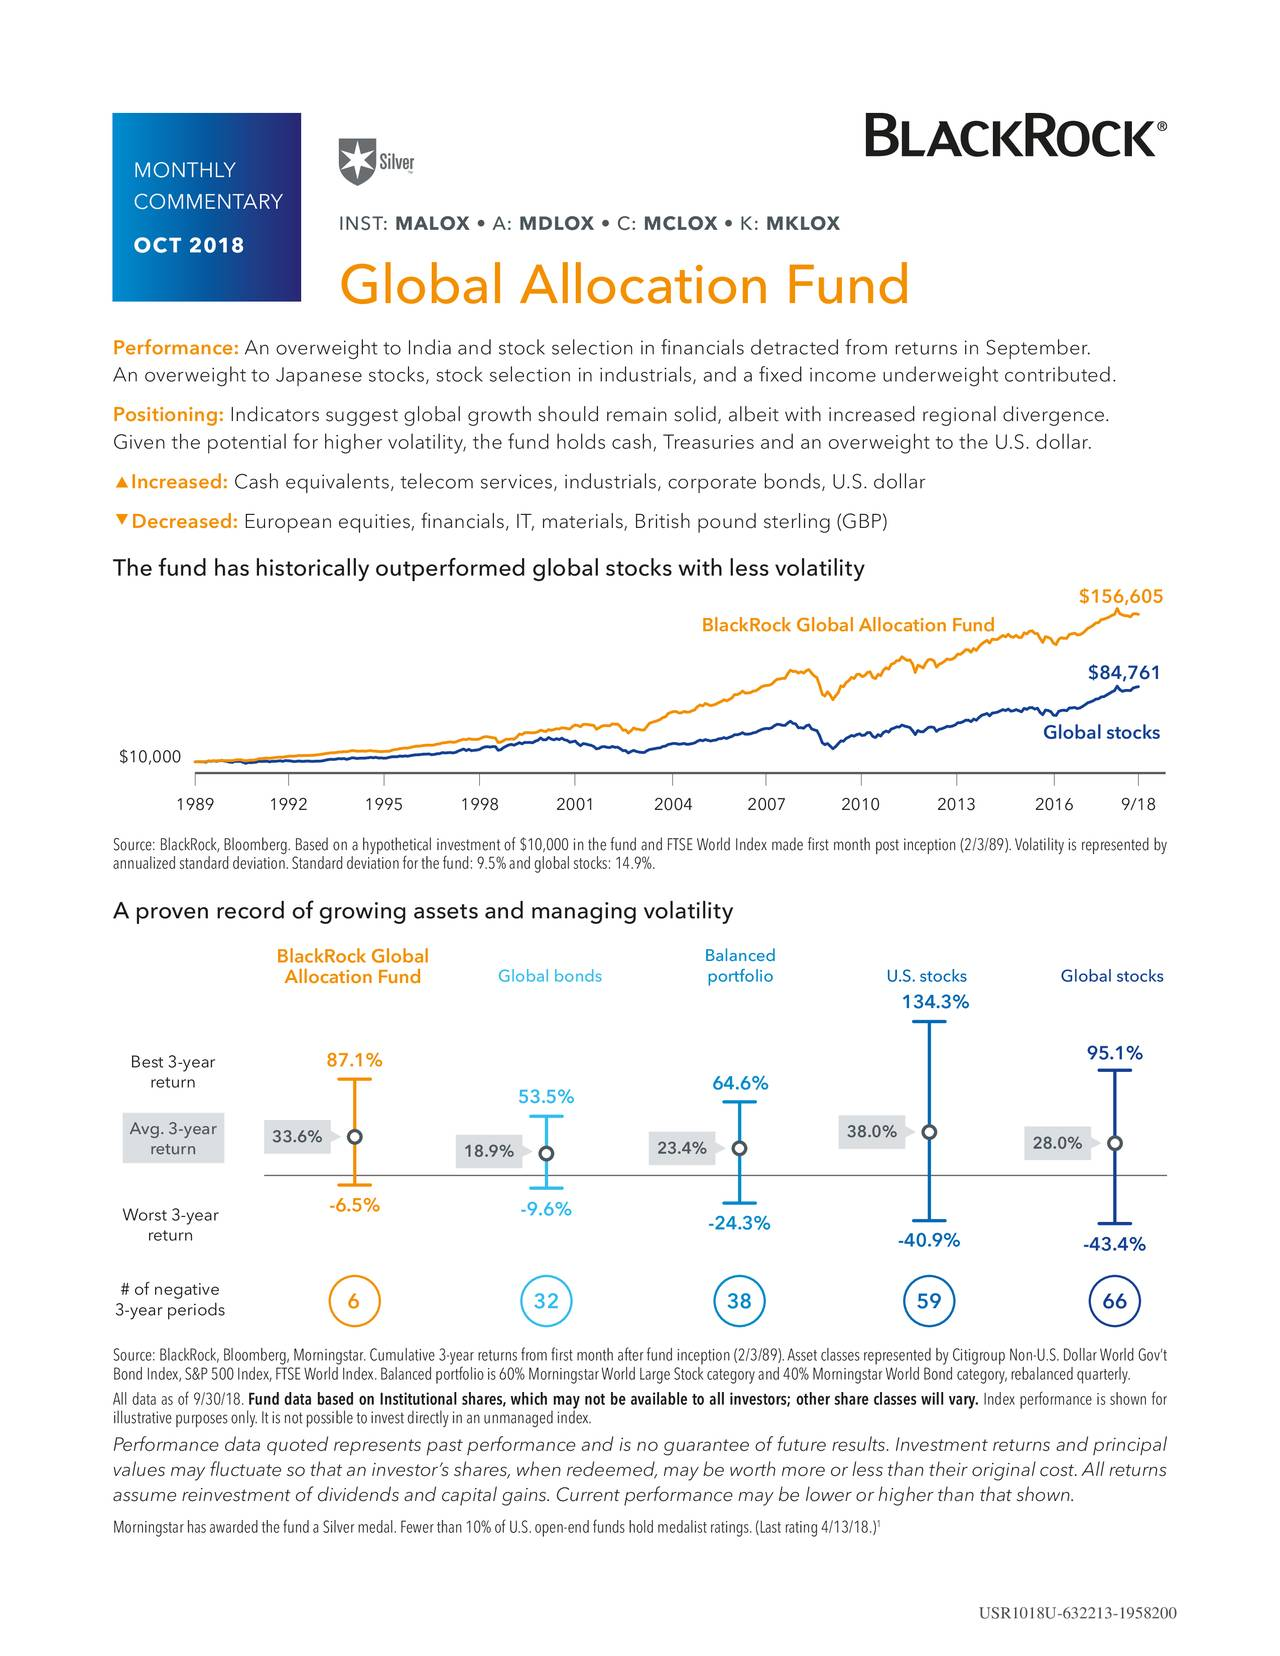 COMMENTARY INST: MALOX • A: MDLOX • C: MCLOX • K: MKLOX OCT 2018 Global Allocation Fund Performance: An overweight to India and stock selection in financials detracted from returns in September. An overweight to Japanese stocks, stock selection in industrials, and a fixed income underweight contributed. Positioning: Indicators suggest global growth should remain solid, albeit with increased regional divergence. Given the potential for higher volatility, the fund holds cash, Treasuries and an overweight to the U.S. dollar.  Increased: Cash equivalents, telecom services, industrials, corporate bonds, U.S. dollar  Decreased: European equities, financials, IT, materials, British pound sterling (GBP) The fund has historically outperformed global stocks with less volatility $156,605 BlackRock Global Allocation Fund $84,761 Global stocks ▯10,000 1989 1992 1995 1998 2001 200▯ 200▯ 2010 2013 2016 9/18 Source:BlackRock,Bloomberg.Basedonahypotheticalinvestmentof $10,000inthefundandFTSEWorldIndexmadefirstmonthpostinception(2/3/89).Volatilityisrepresentedby annualizedstandarddeviation.Standarddeviationforthefund:9.5%andglobalstocks:14.9%. A proven record of growing assets and managing volatility BlackRock Global Balanced Allocation Fund Global bonds portfolio U.S. stocks Global stocks 134.3% Best 3-year 87.1% 95.1% return 64.6% 53.5% Avg. 3-year 33.6% 38.0% 28.0% return 18.9% 23.4% Worst 3-year -6.5% -9.6% return -24.3% -40.9% -43.4% # of negative 3-year periods 6 32 38 59 66 Source:BlackRock,Bloomberg,Morningstar.Cumulative3-yearreturnsfromfirstmonthafterfundinception(2/3/89).AssetclassesrepresentedbyCitigroupNon-U.S.DollarWorldGov't BondIndex,S&P500Index,FTSEWorldIndex.Balancedportfoliois60%MorningstarWorldLargeStockcategoryand40%MorningstarWorldBondcategory,rebalancedquarterly. Alldataasof 9/30/18.Fund data based on Institutional shares,which may not be available to all investors; other share classes will vary.Indexperformanceisshownfor illustrativepurposesonly.Itisnotpossibletoinvestdirectlyinanunmanagedindex. Performance data quoted represents past performance and is no guarantee of future results. Investment returns and principal values may fluctuate so that an investor's shares, when redeemed, may be worth more or less than their original cost.All returns assume reinvestment of dividends and capital gains. Current performance may be lower or higher than that shown. MorningstarhasawardedthefundaSilvermedal.Fewerthan10%of U.S.open-endfundsholdmedalistratings.(Lastrating4/13/18.) USR1018U-632213-1958200